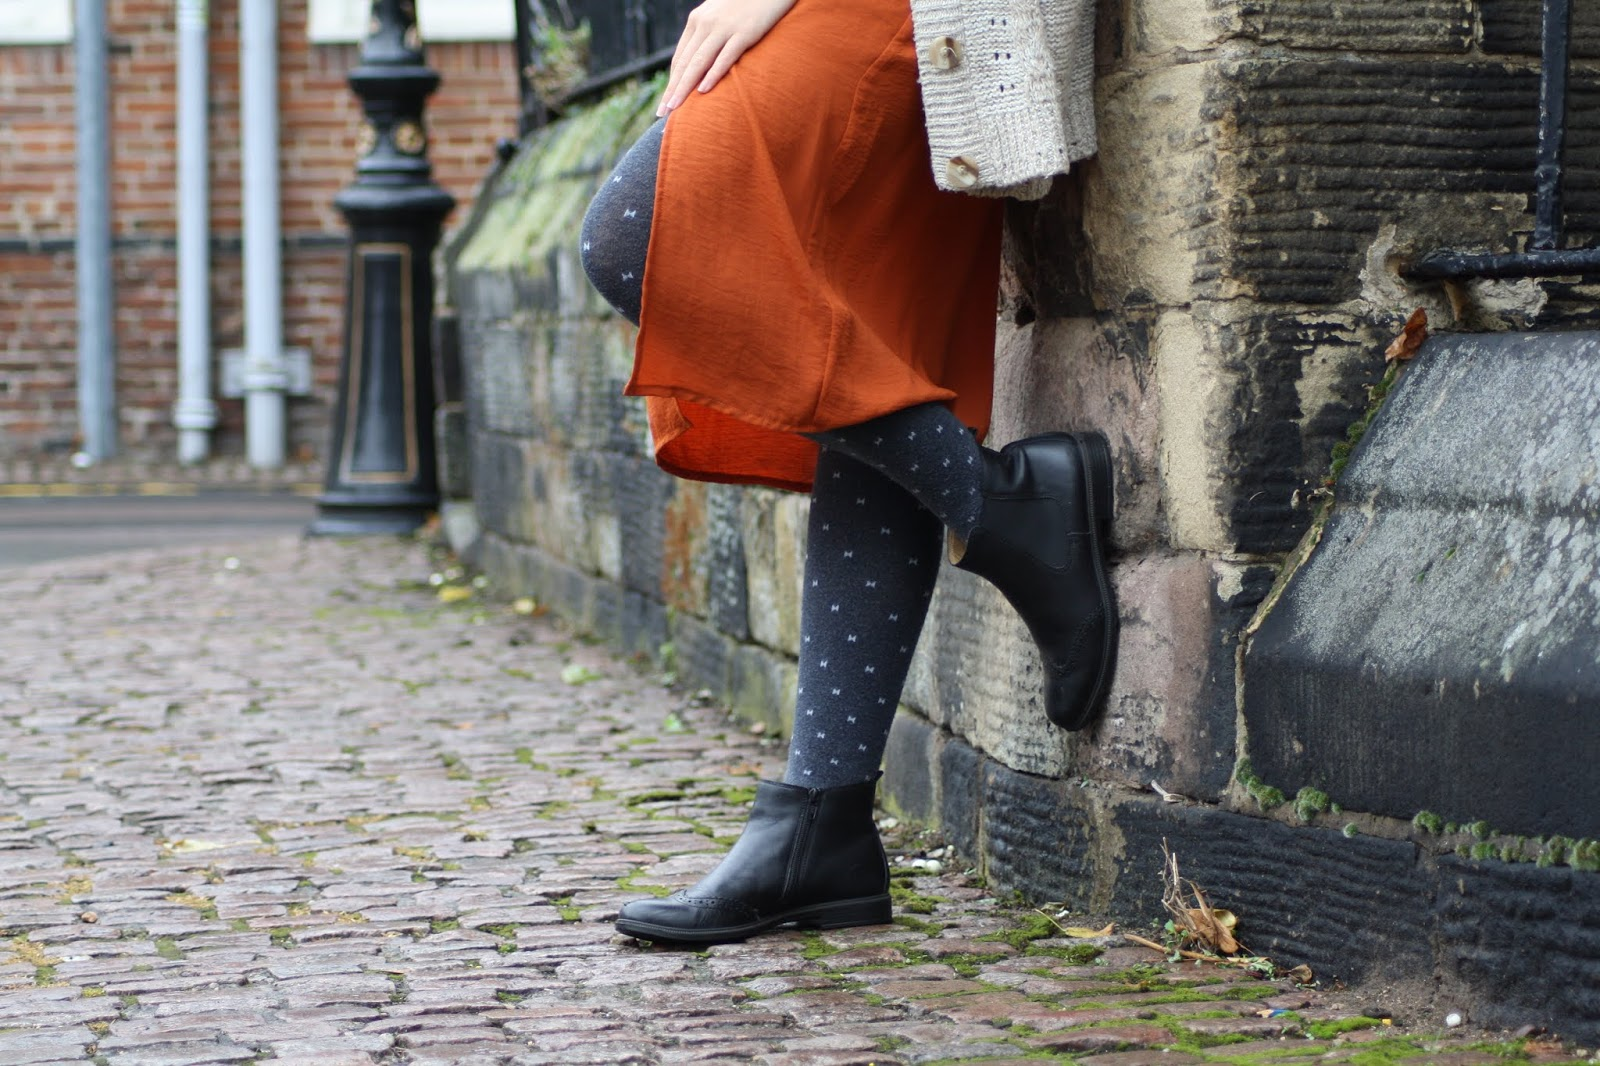 Abbey, resting one leg against the wall, wears knit tights, orange dress, and black leather boots